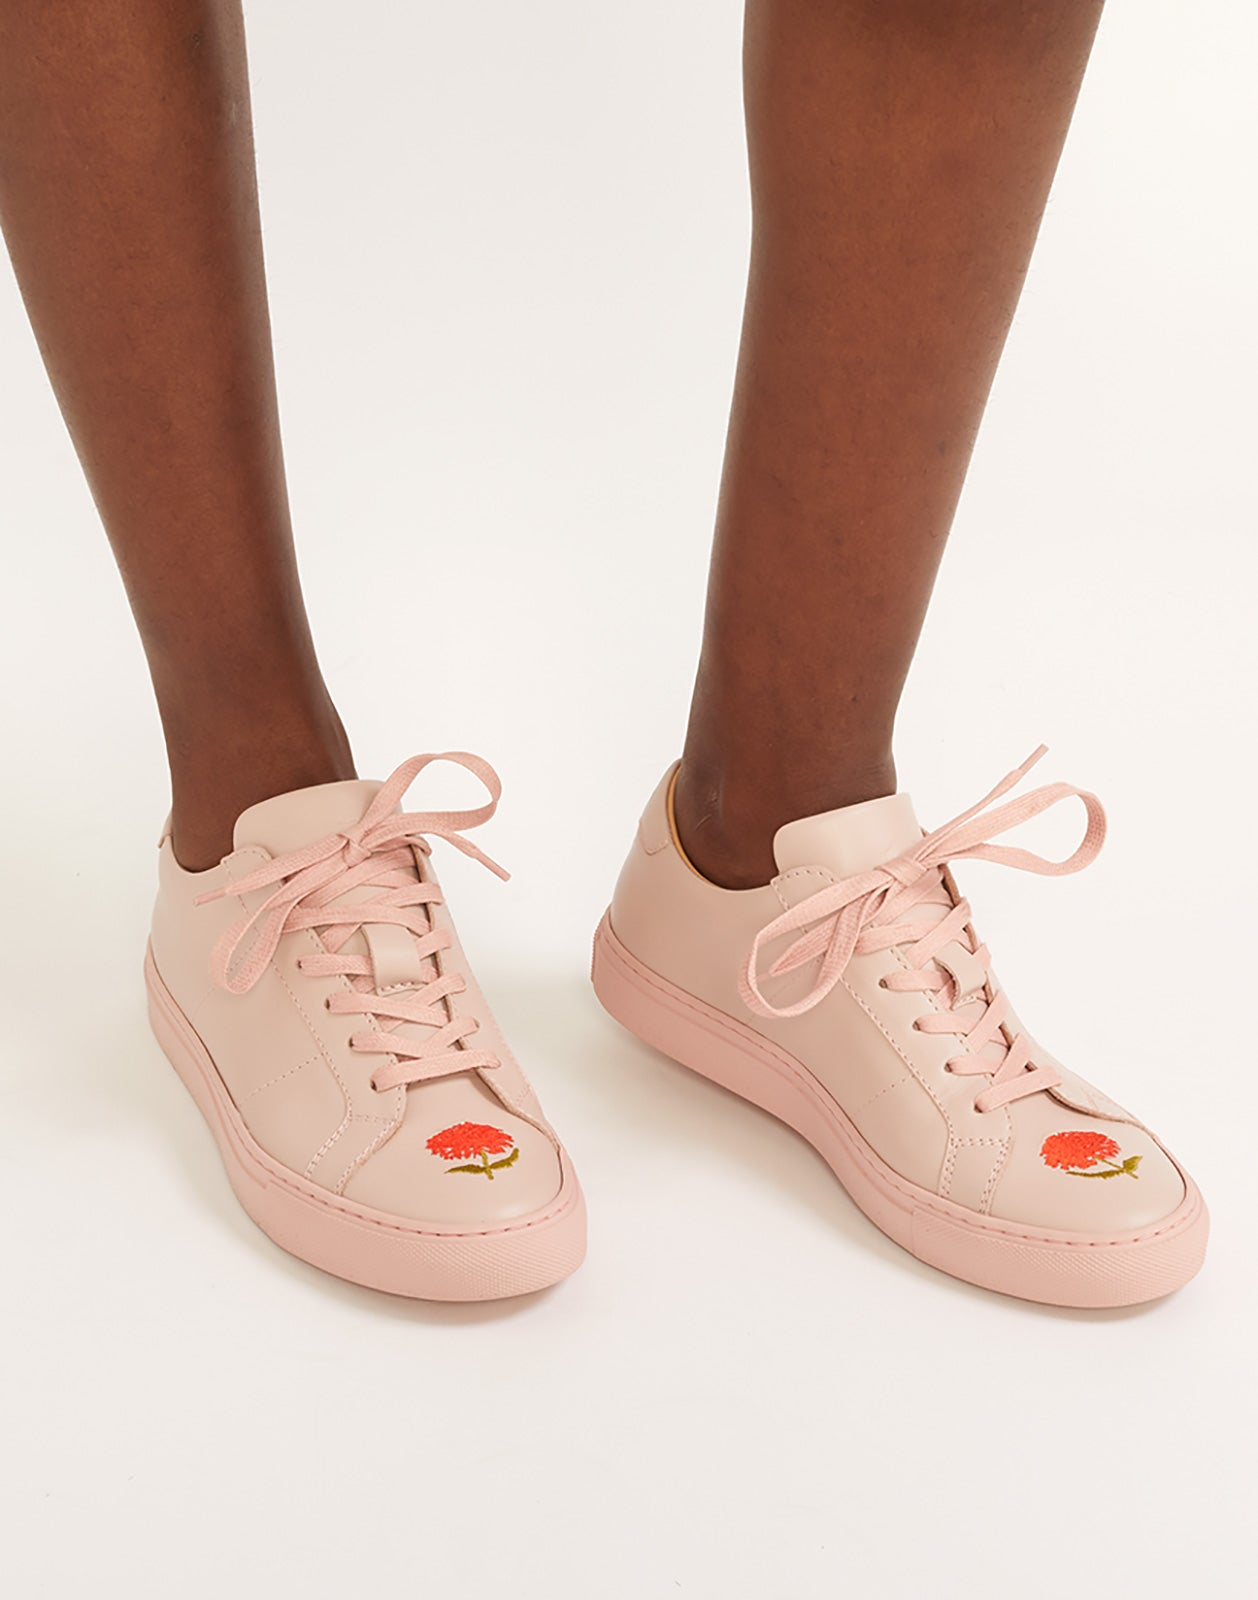 Alternate close view of pink lace up sneaker with flower embroidery.